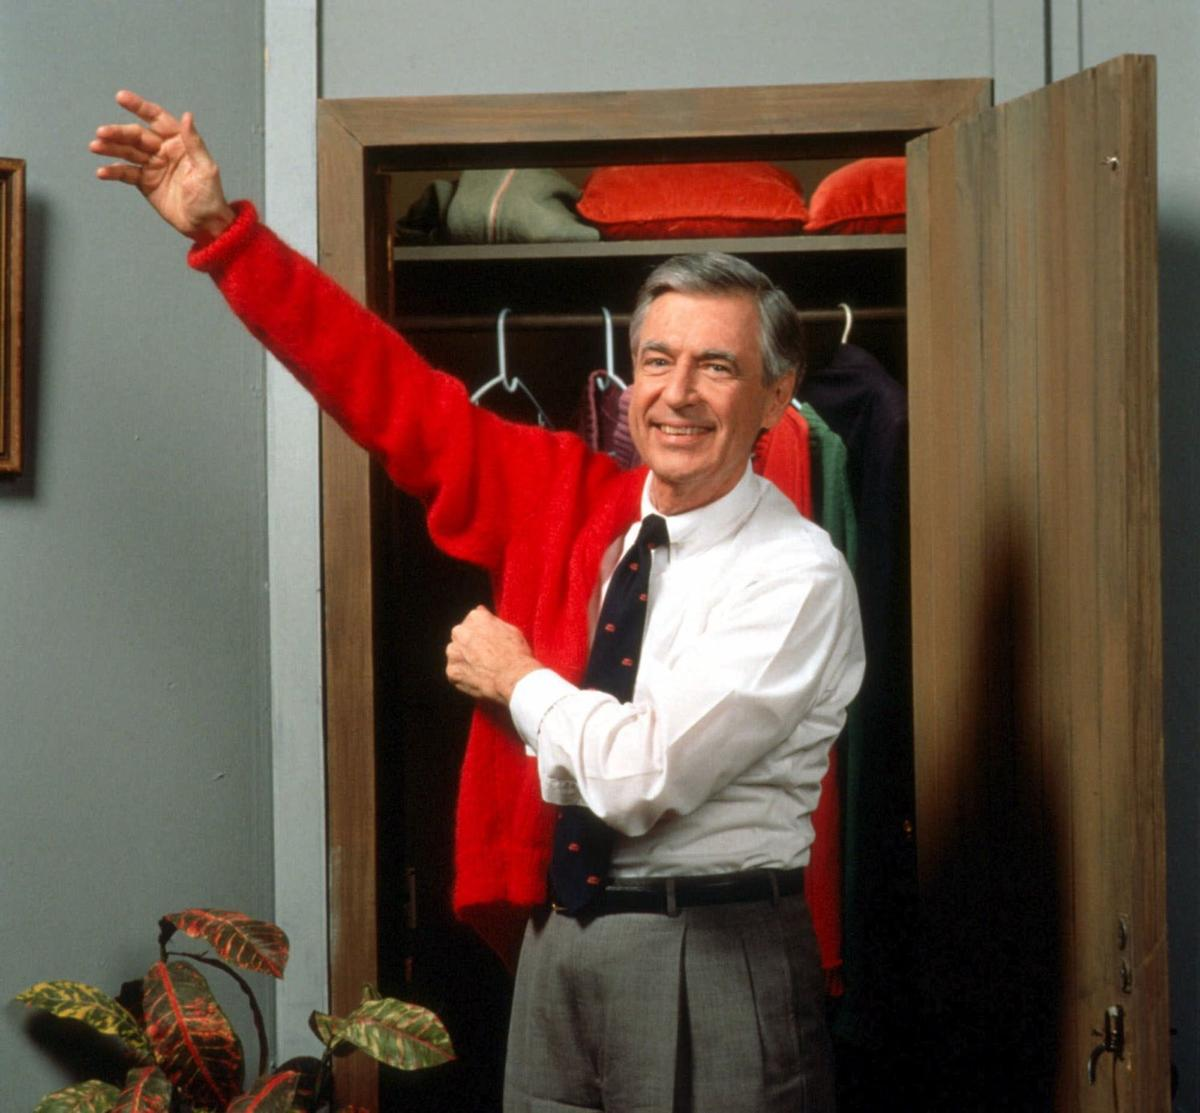 Fred Rogers America S Favorite Neighbor Celebrated In 2018 Television Stltoday Com